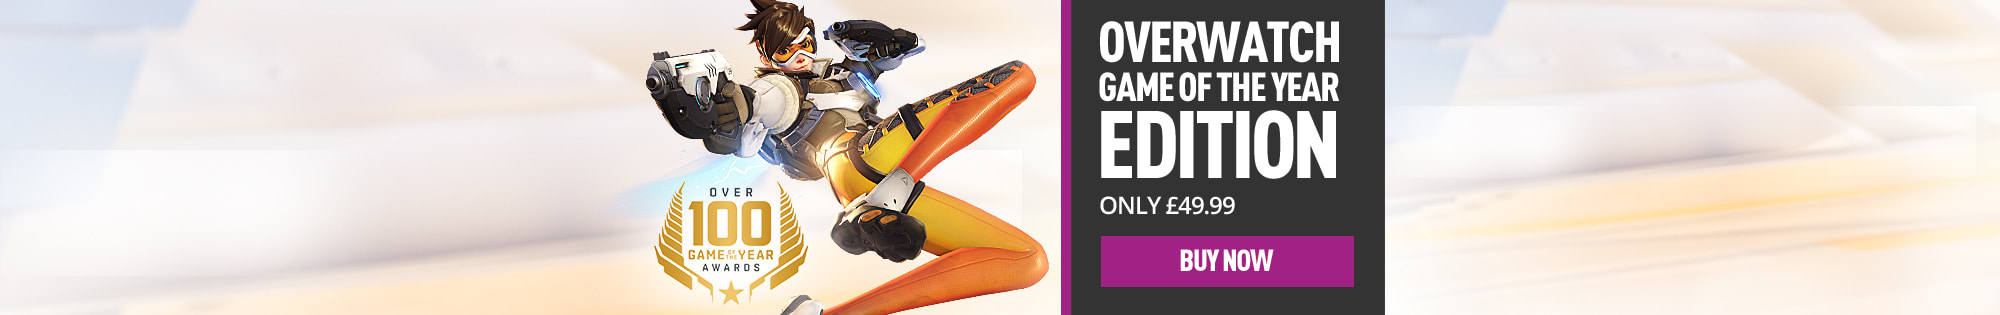 Overwatch Game of the Year Edition - Homepage Banner